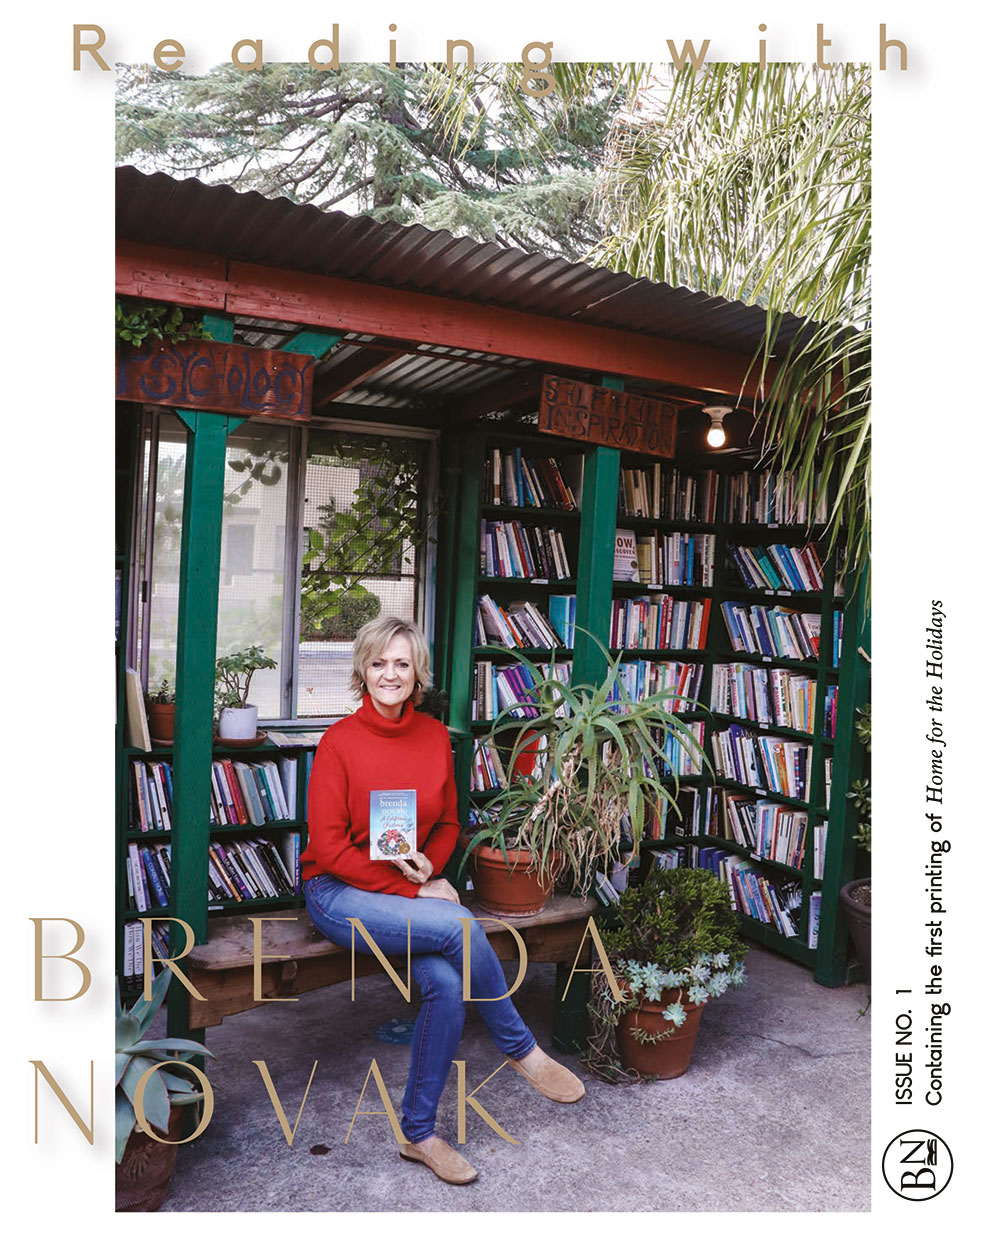 Download for Free: Reading with Brenda Novak — Issue No.1